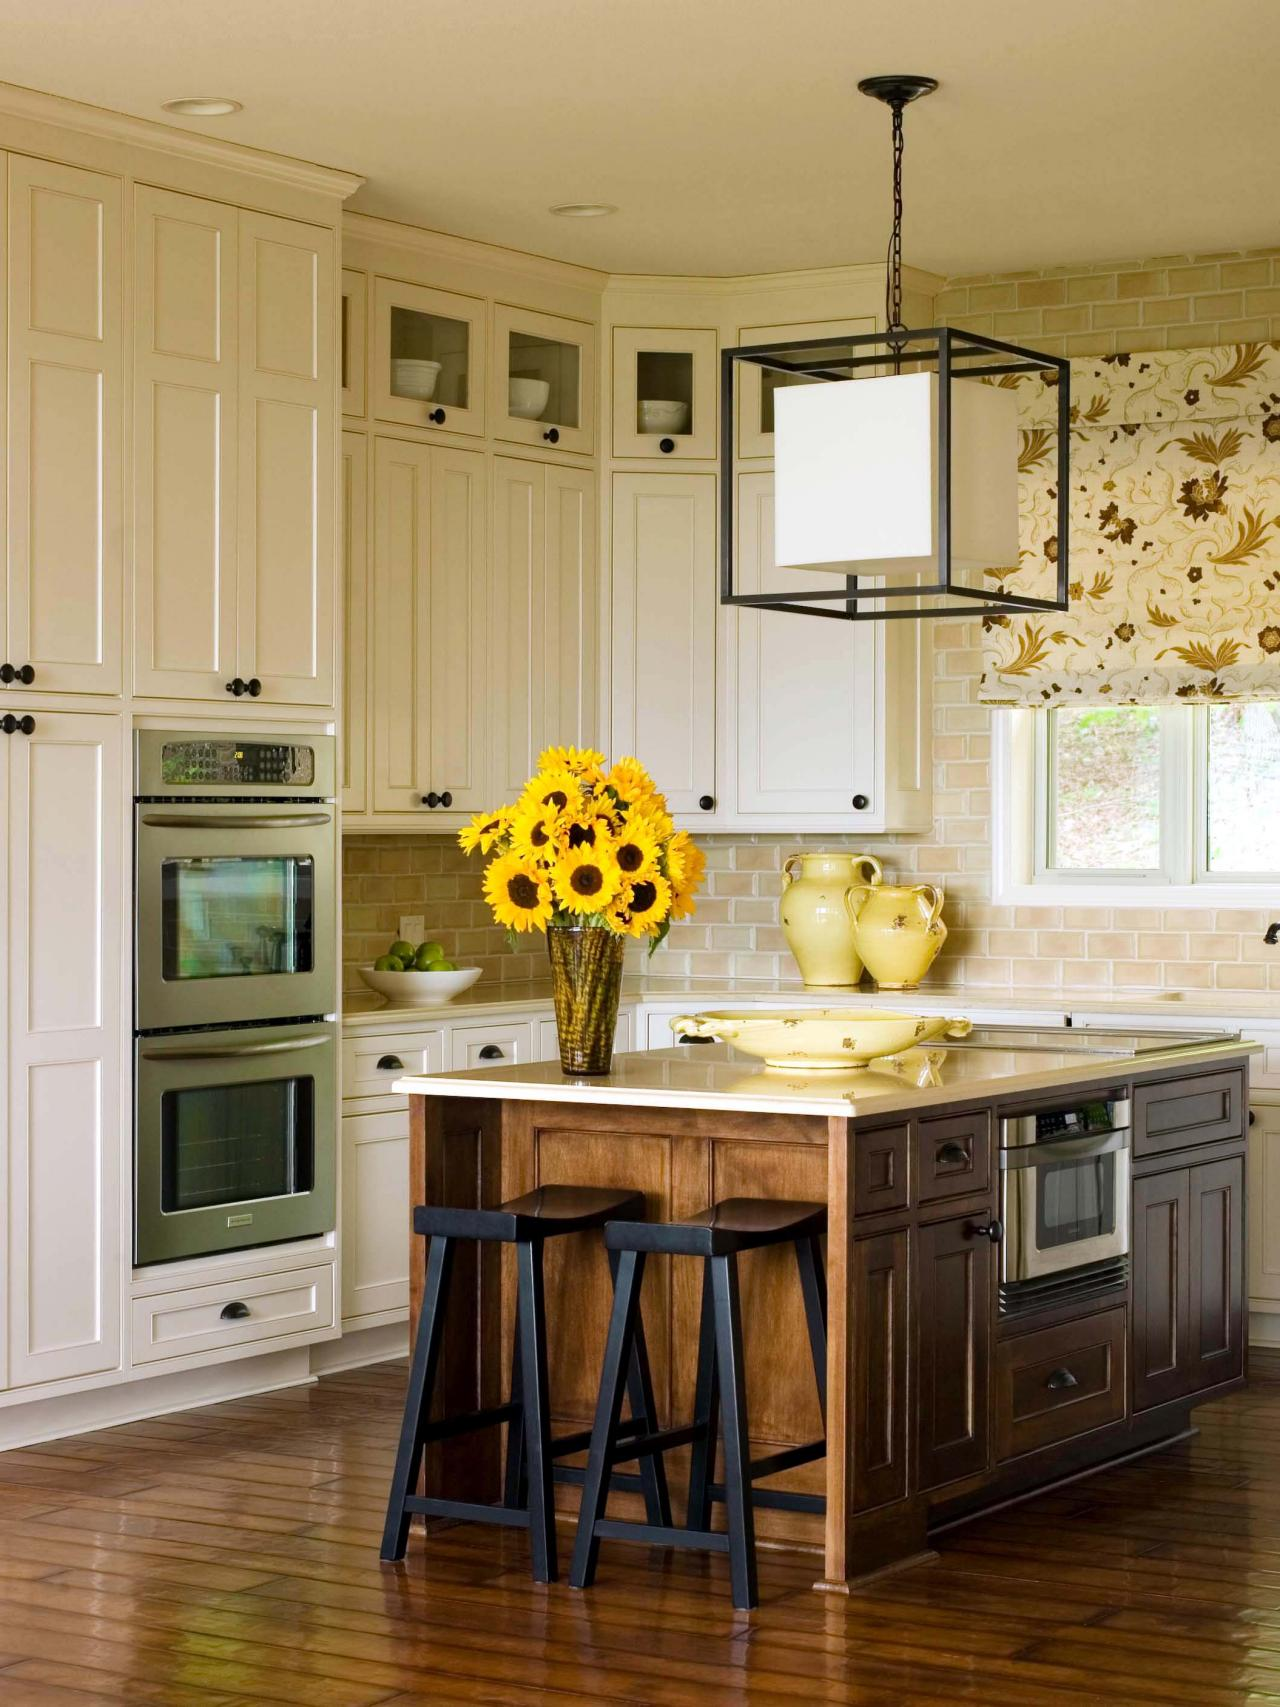 Replacing Kitchen Cabinets On A Budget Diy Kitchen Cabinets Hgtv Pictures And Do It Yourself Ideas